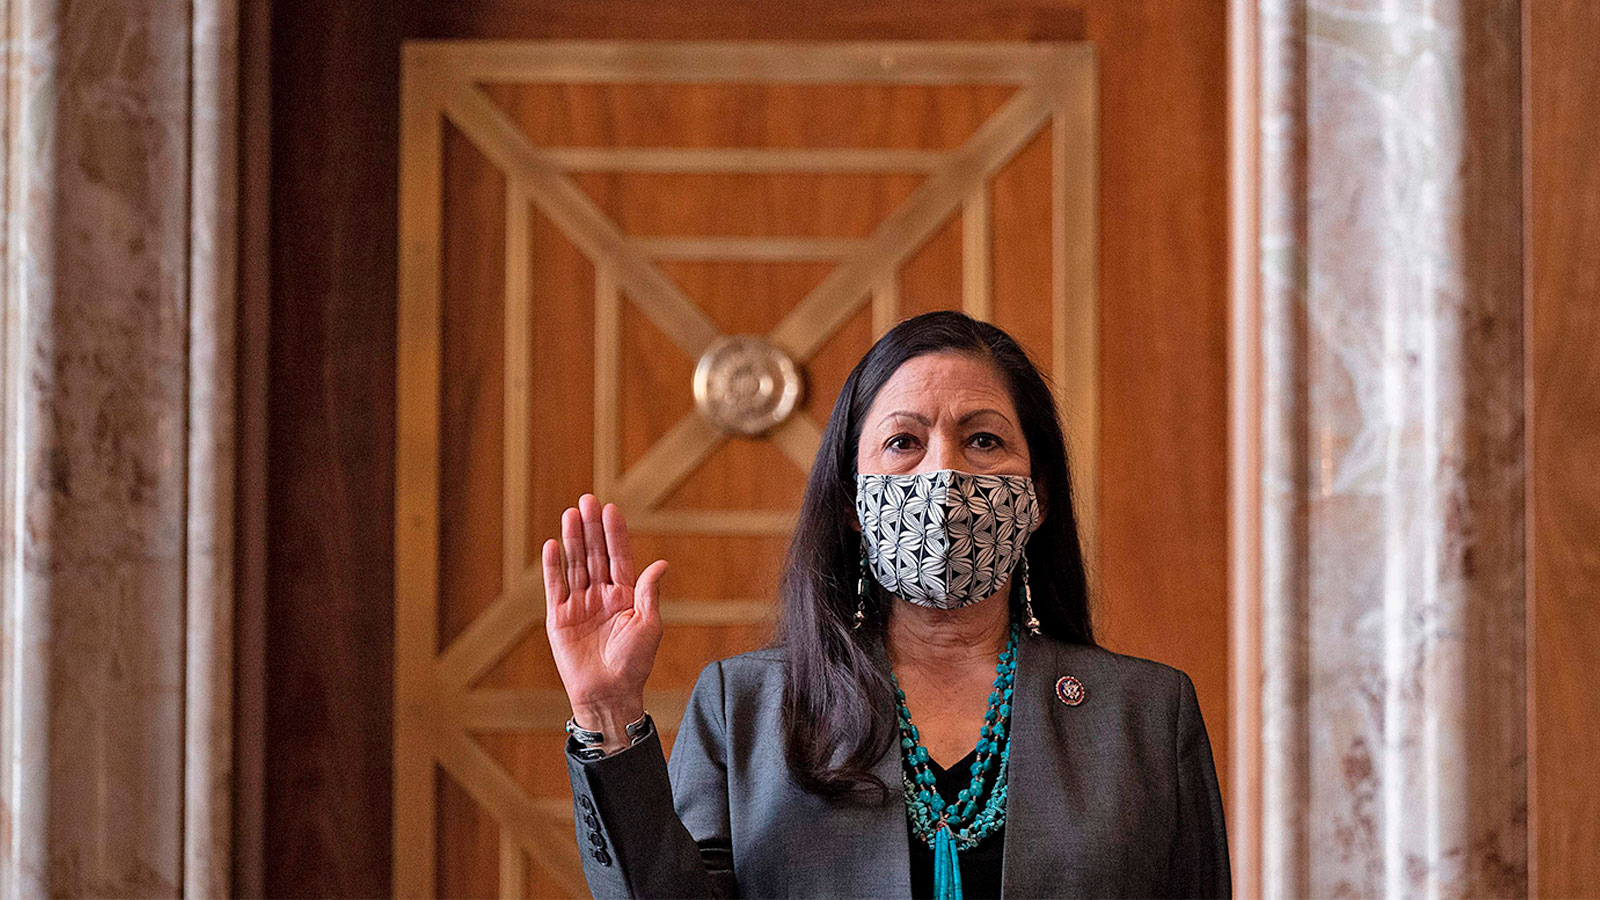 A photograph of Congresswoman Deb Haaland, D-N.M., is sworn in during the Senate Committee on Energy and Natural Resources hearing on her nomination to be Interior Secretary on Capitol Hill in Washington, DC, on February 23, 2021.